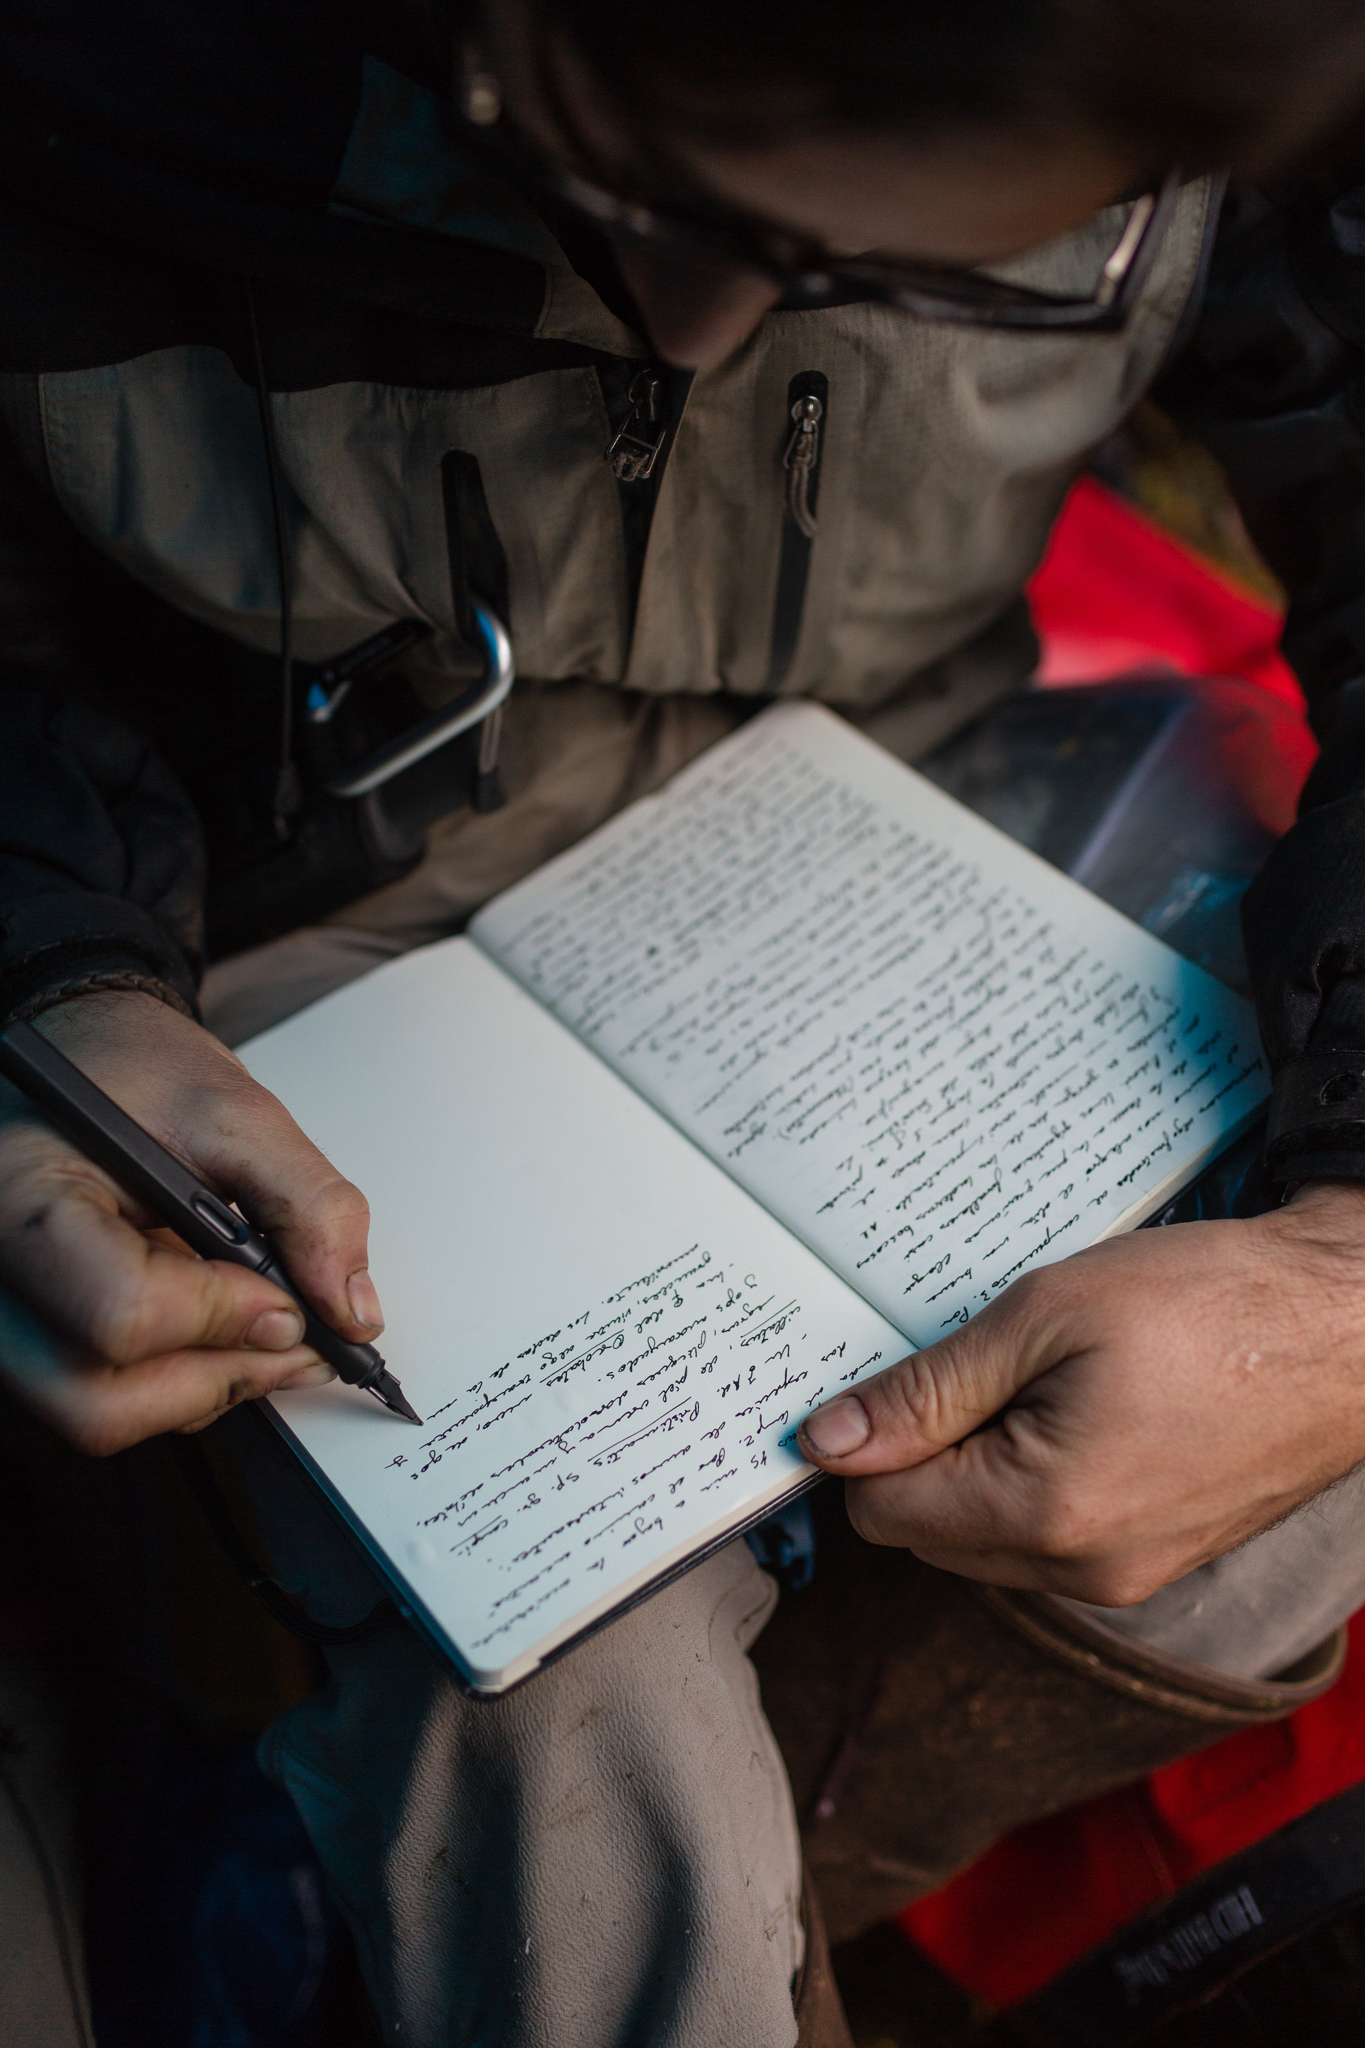 José Padial records the day's observations in his field notebook. Photo by Andy Isaacson